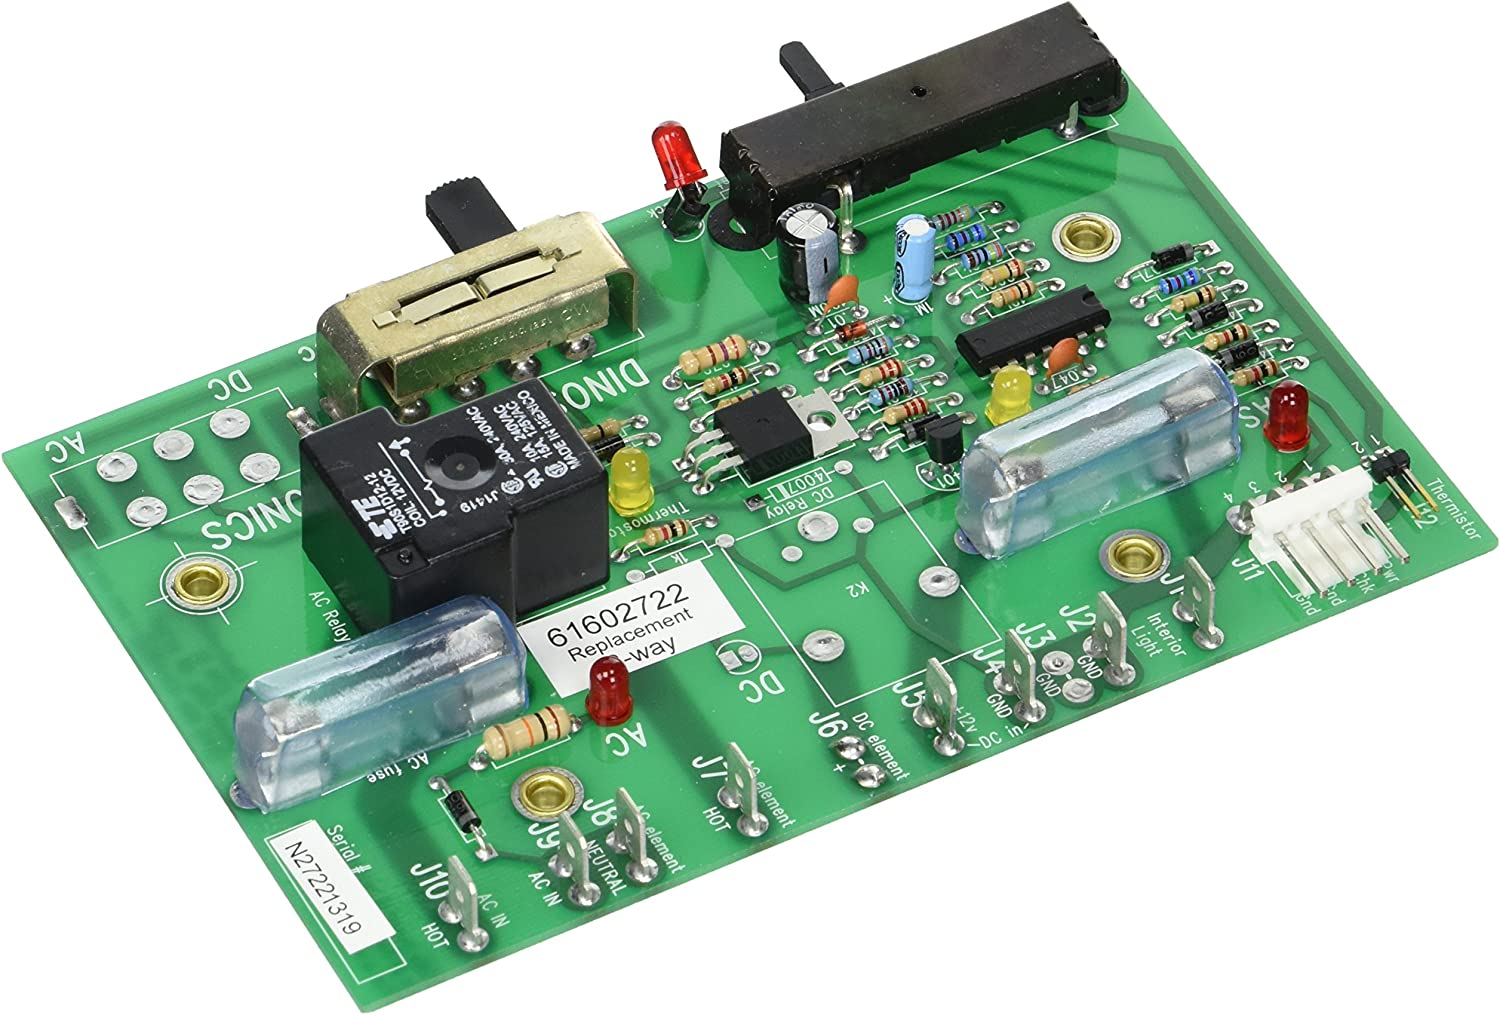 Dinosaur Electronics 61602722 Replacement Board for Norcold Refrigerator